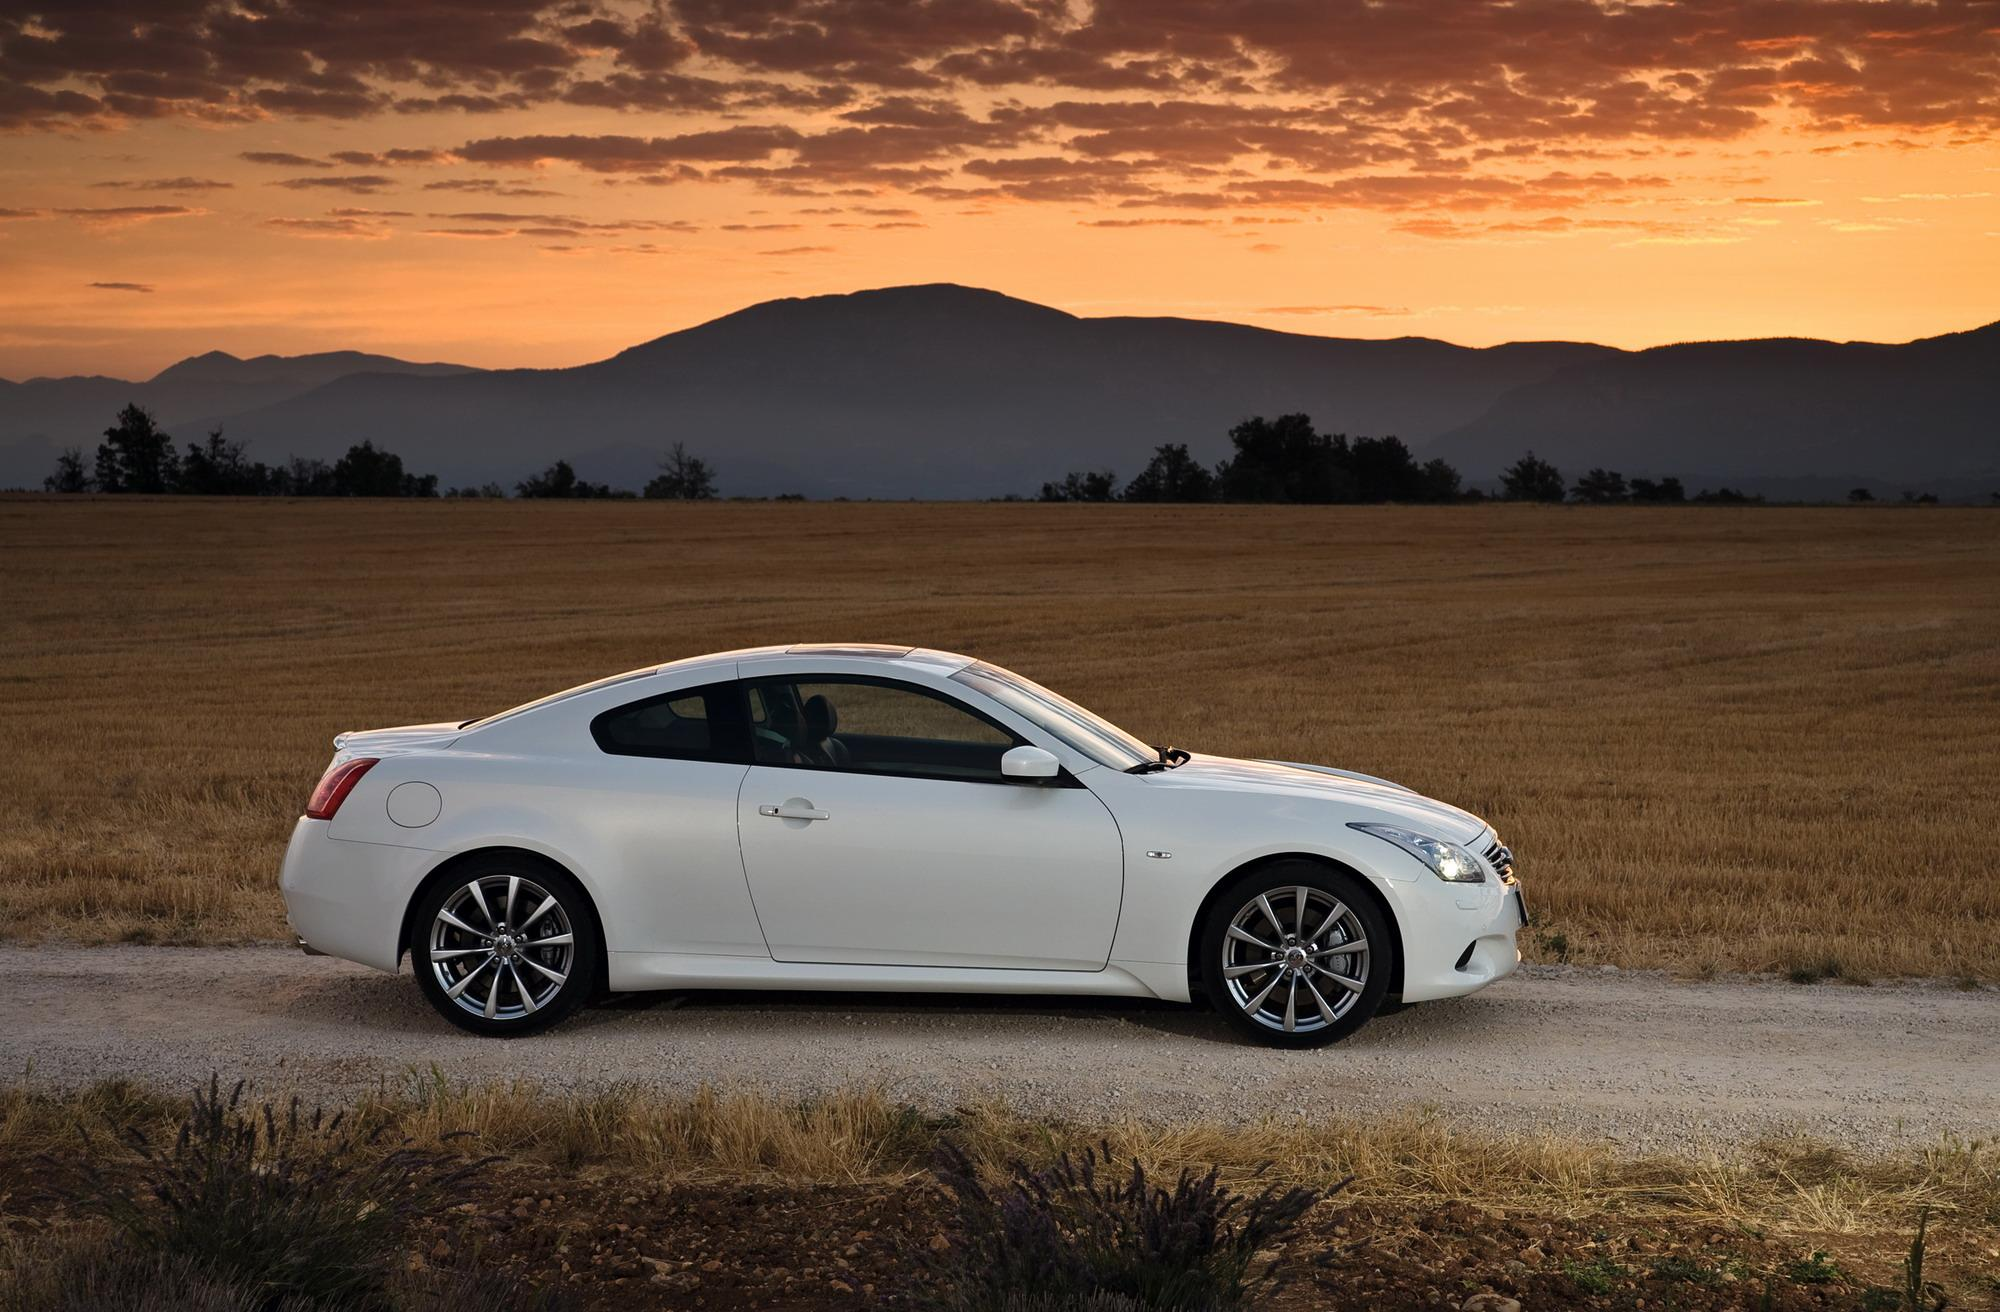 2009 g37 coupe 0-60